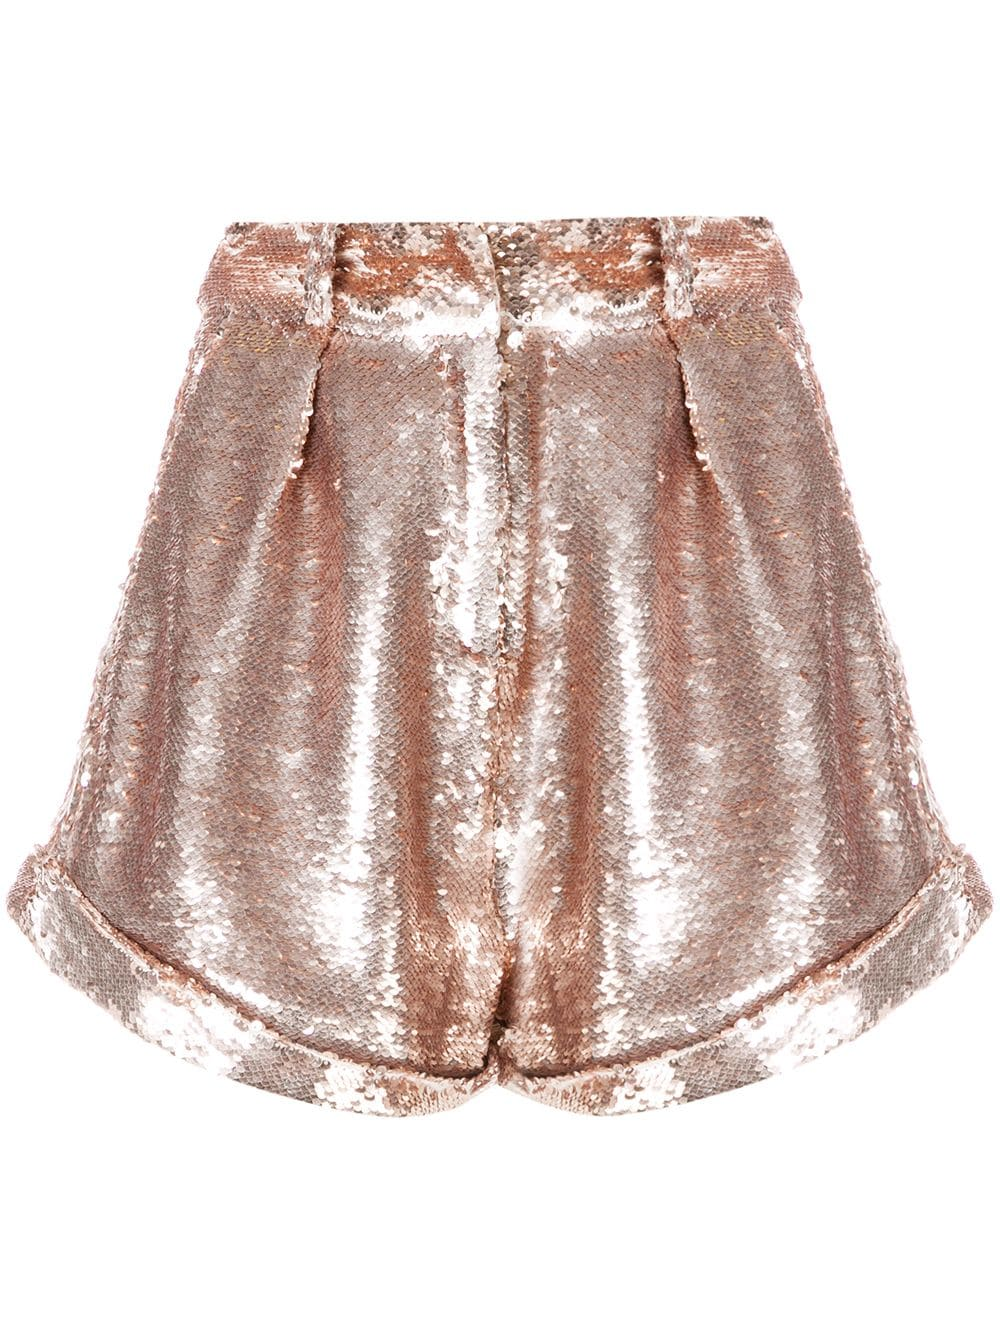 check out baf71 dfda9 iro-sequin-shorts-gold-farfetch-com-photo.jpg 1548266431